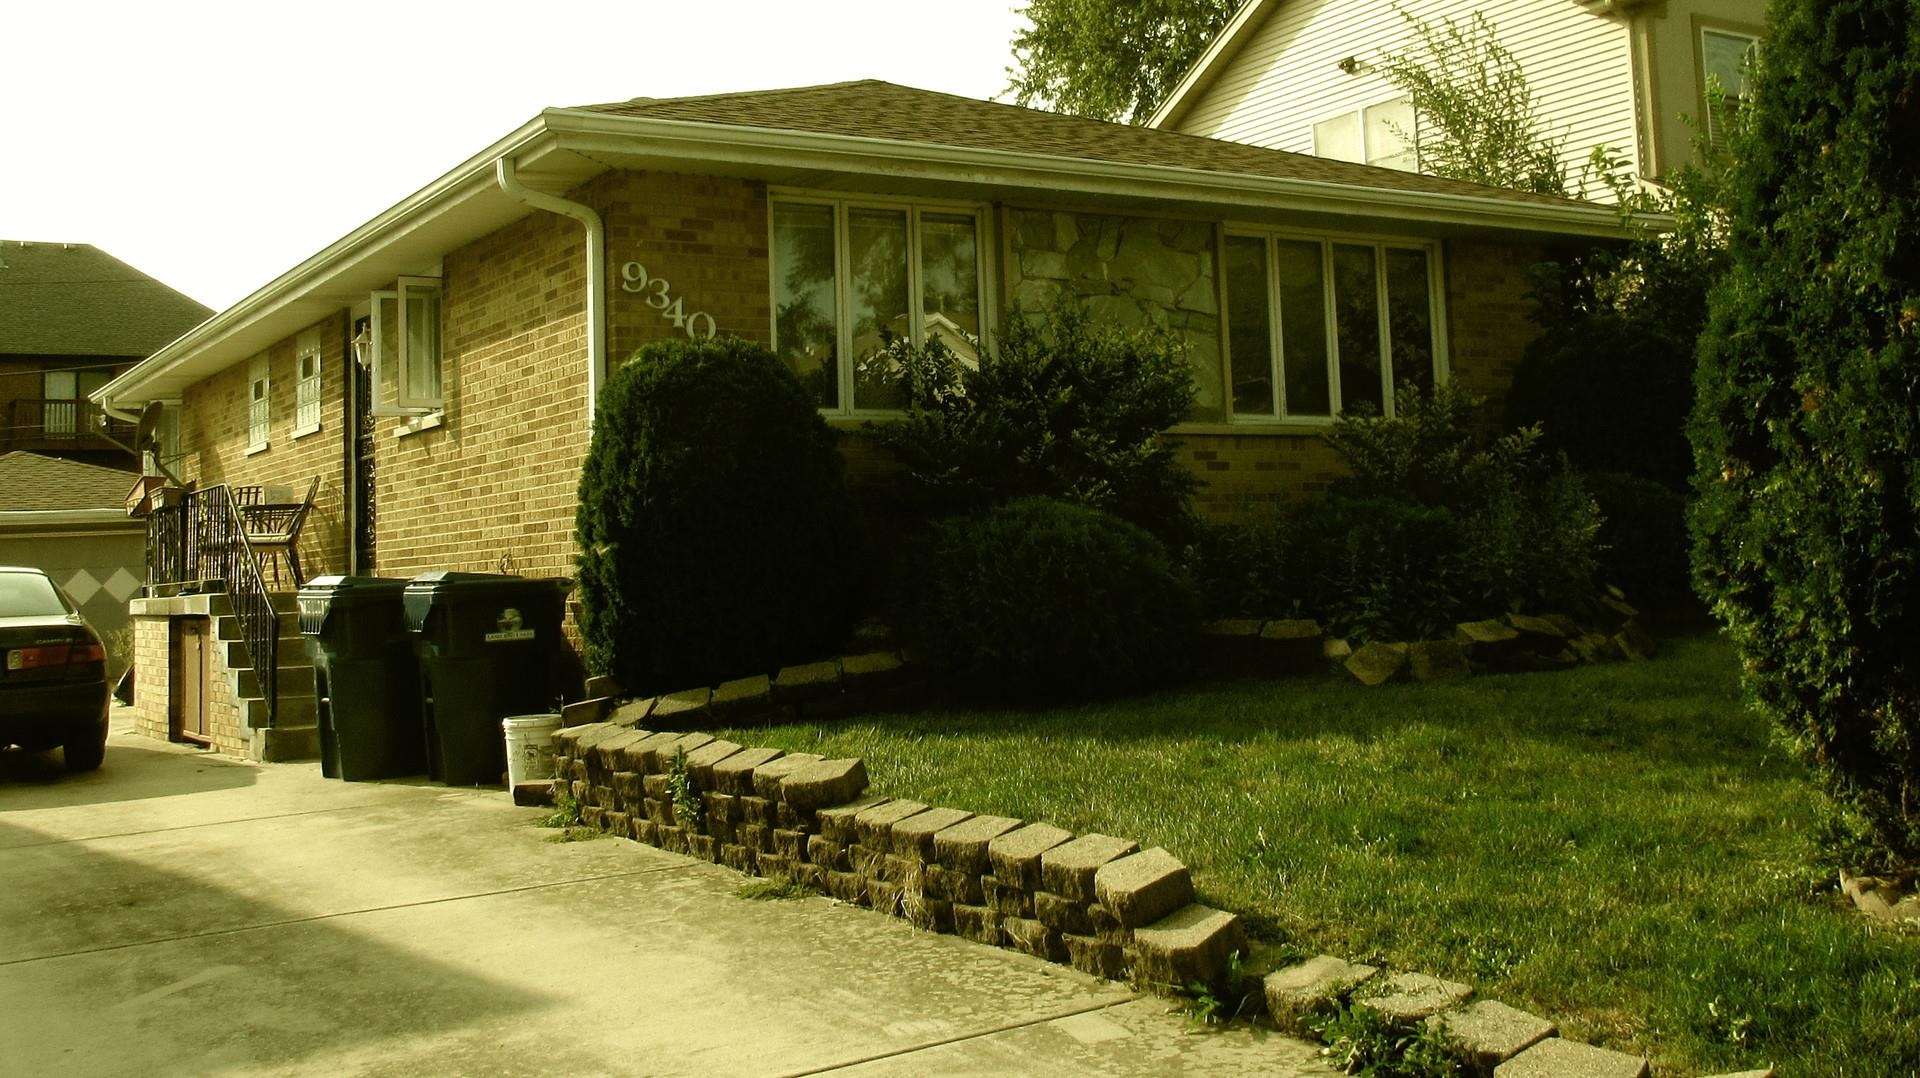 9340 S 81st Court, Hickory Hills, IL 60457 - #: 10860432